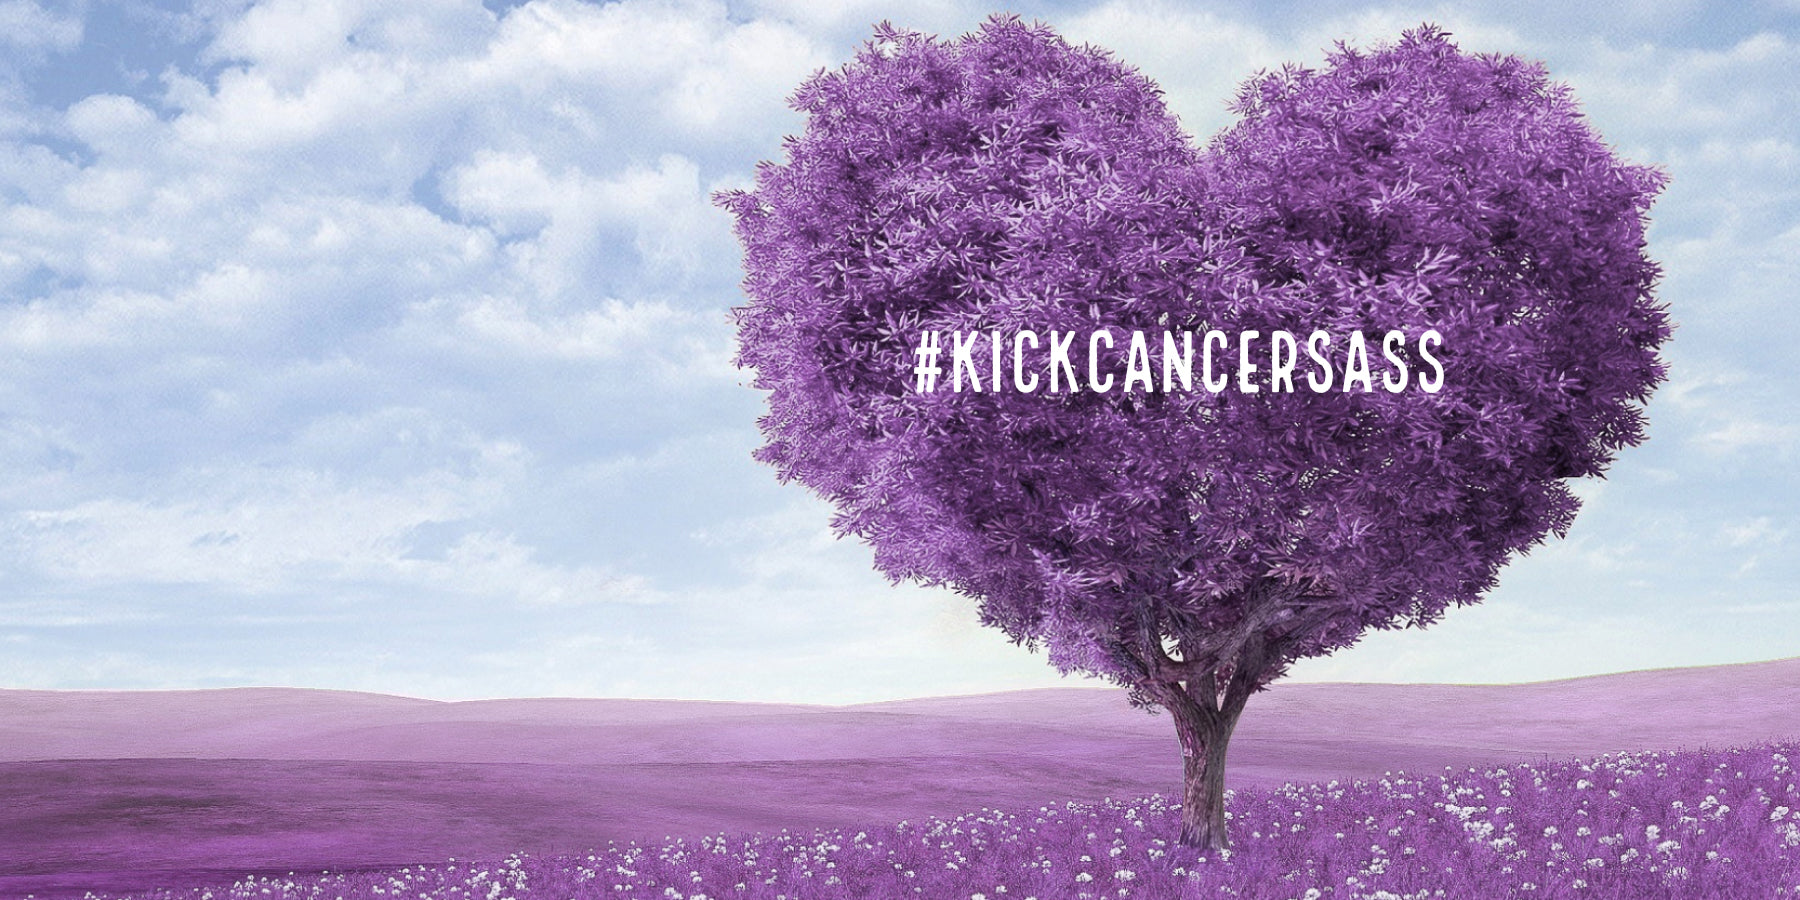 Purple tree and purple fields to symbolise support for people who have cancer or to spread awareness about the disease